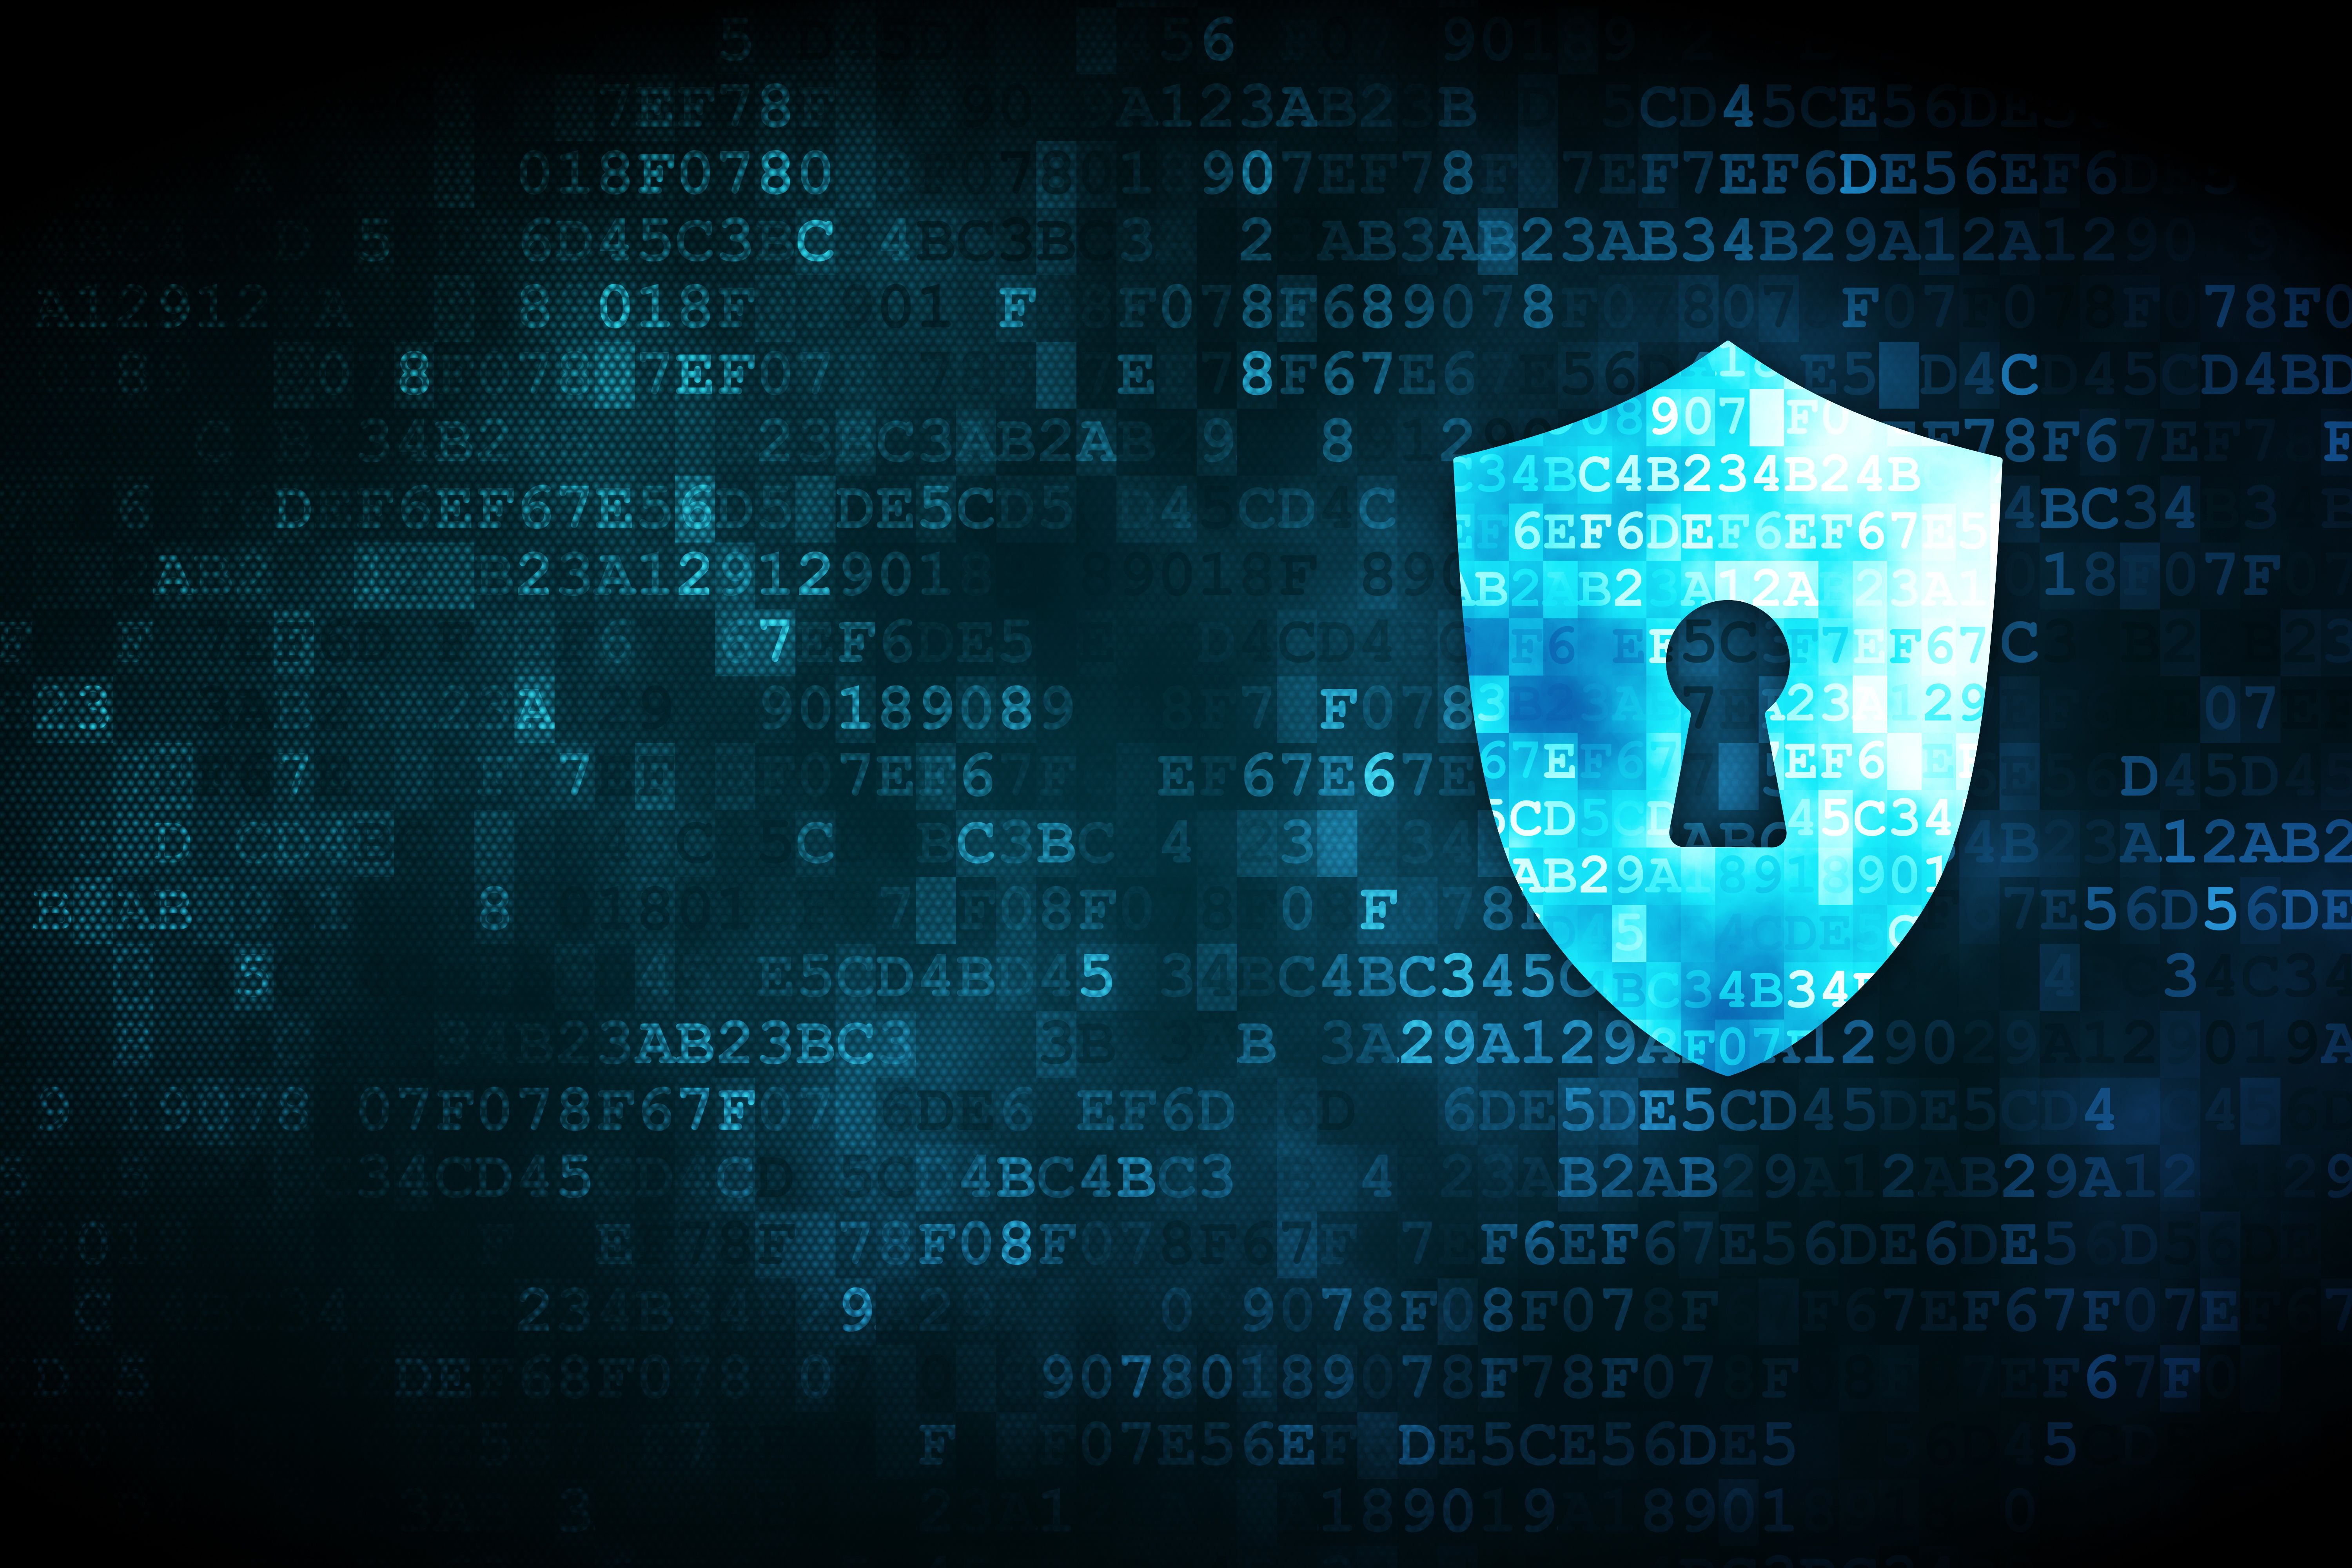 Cyber security wallpapers wallpaper cave - Cyber wallpaper ...